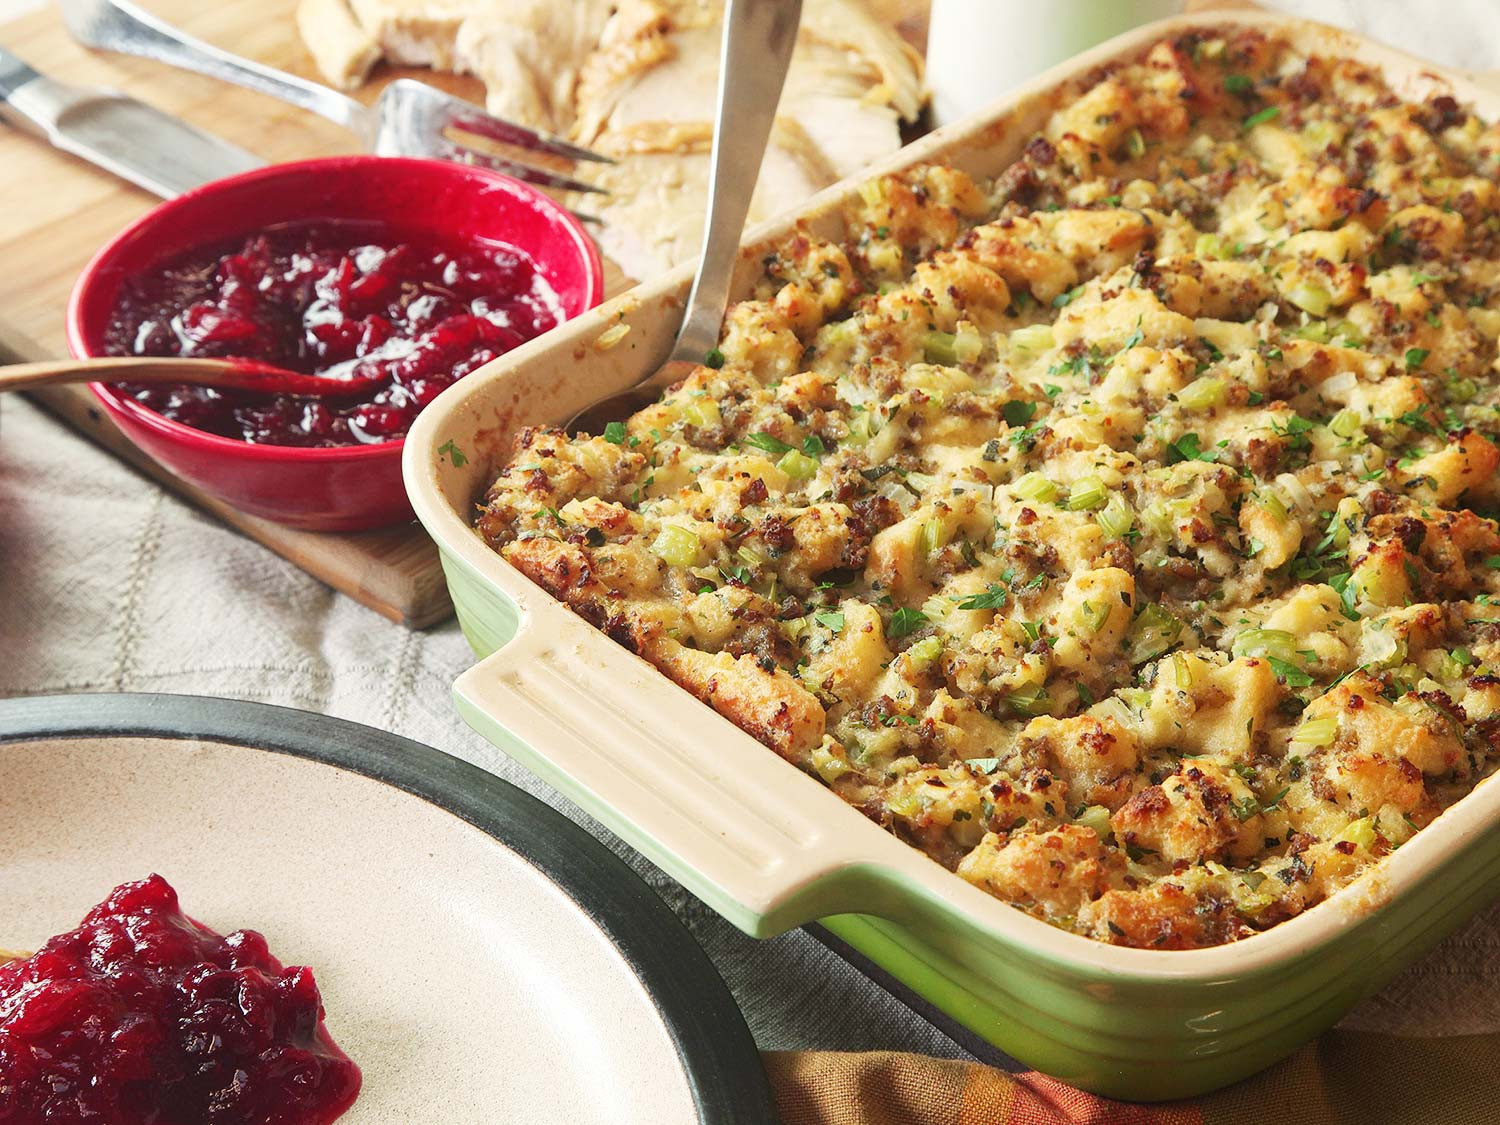 Thanksgiving Turkey Stuffing Recipe  Classic Sage and Sausage Stuffing or Dressing Recipe